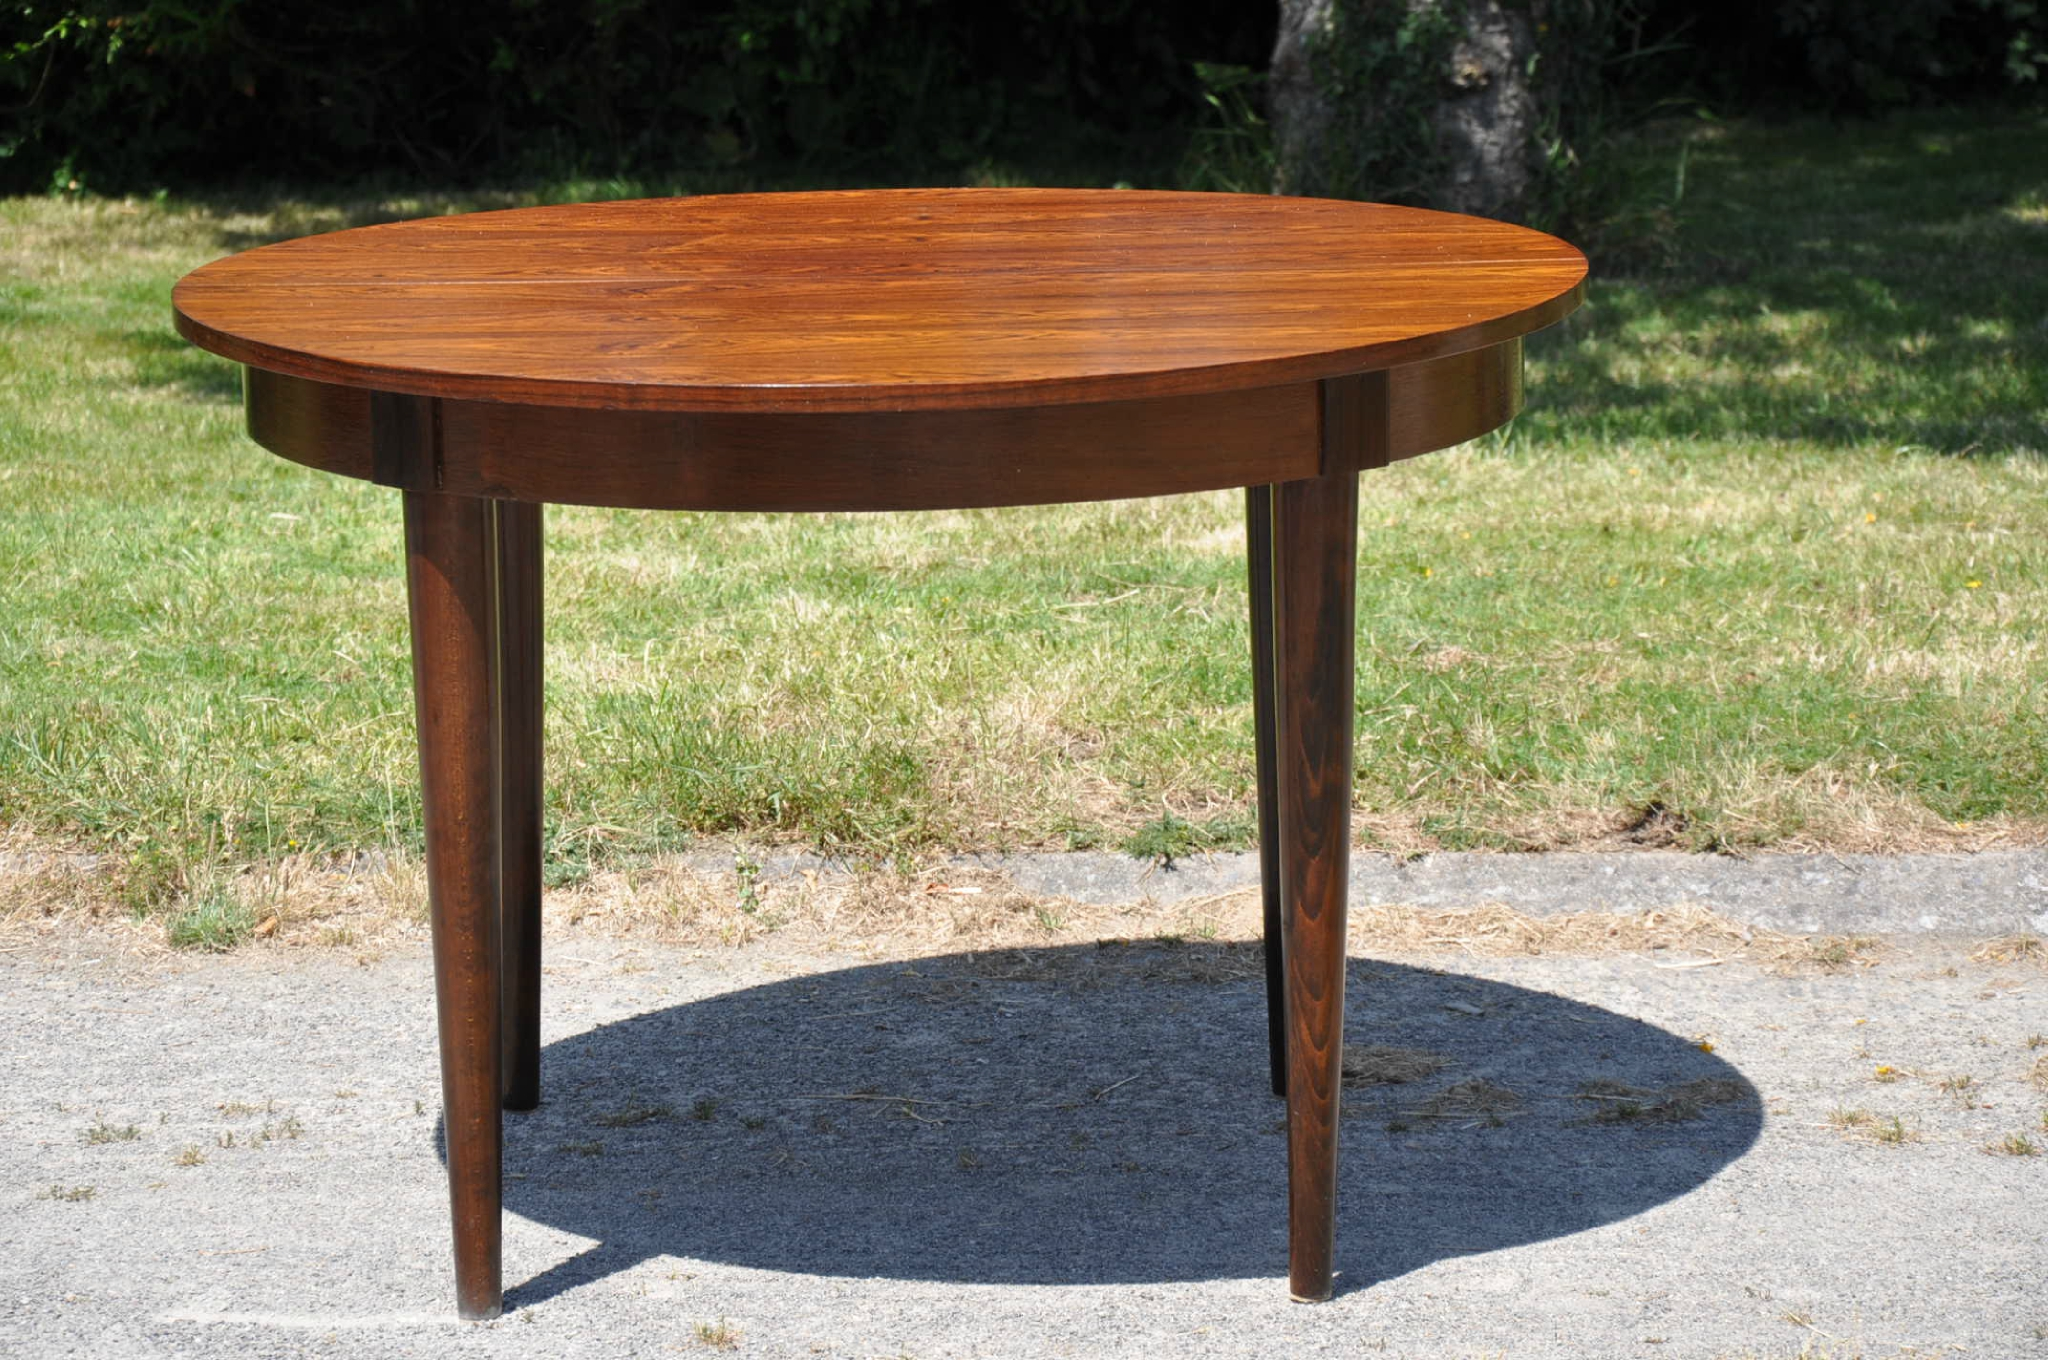 Table ronde scandinave rallonge images - Table ronde pliante avec rallonge ...